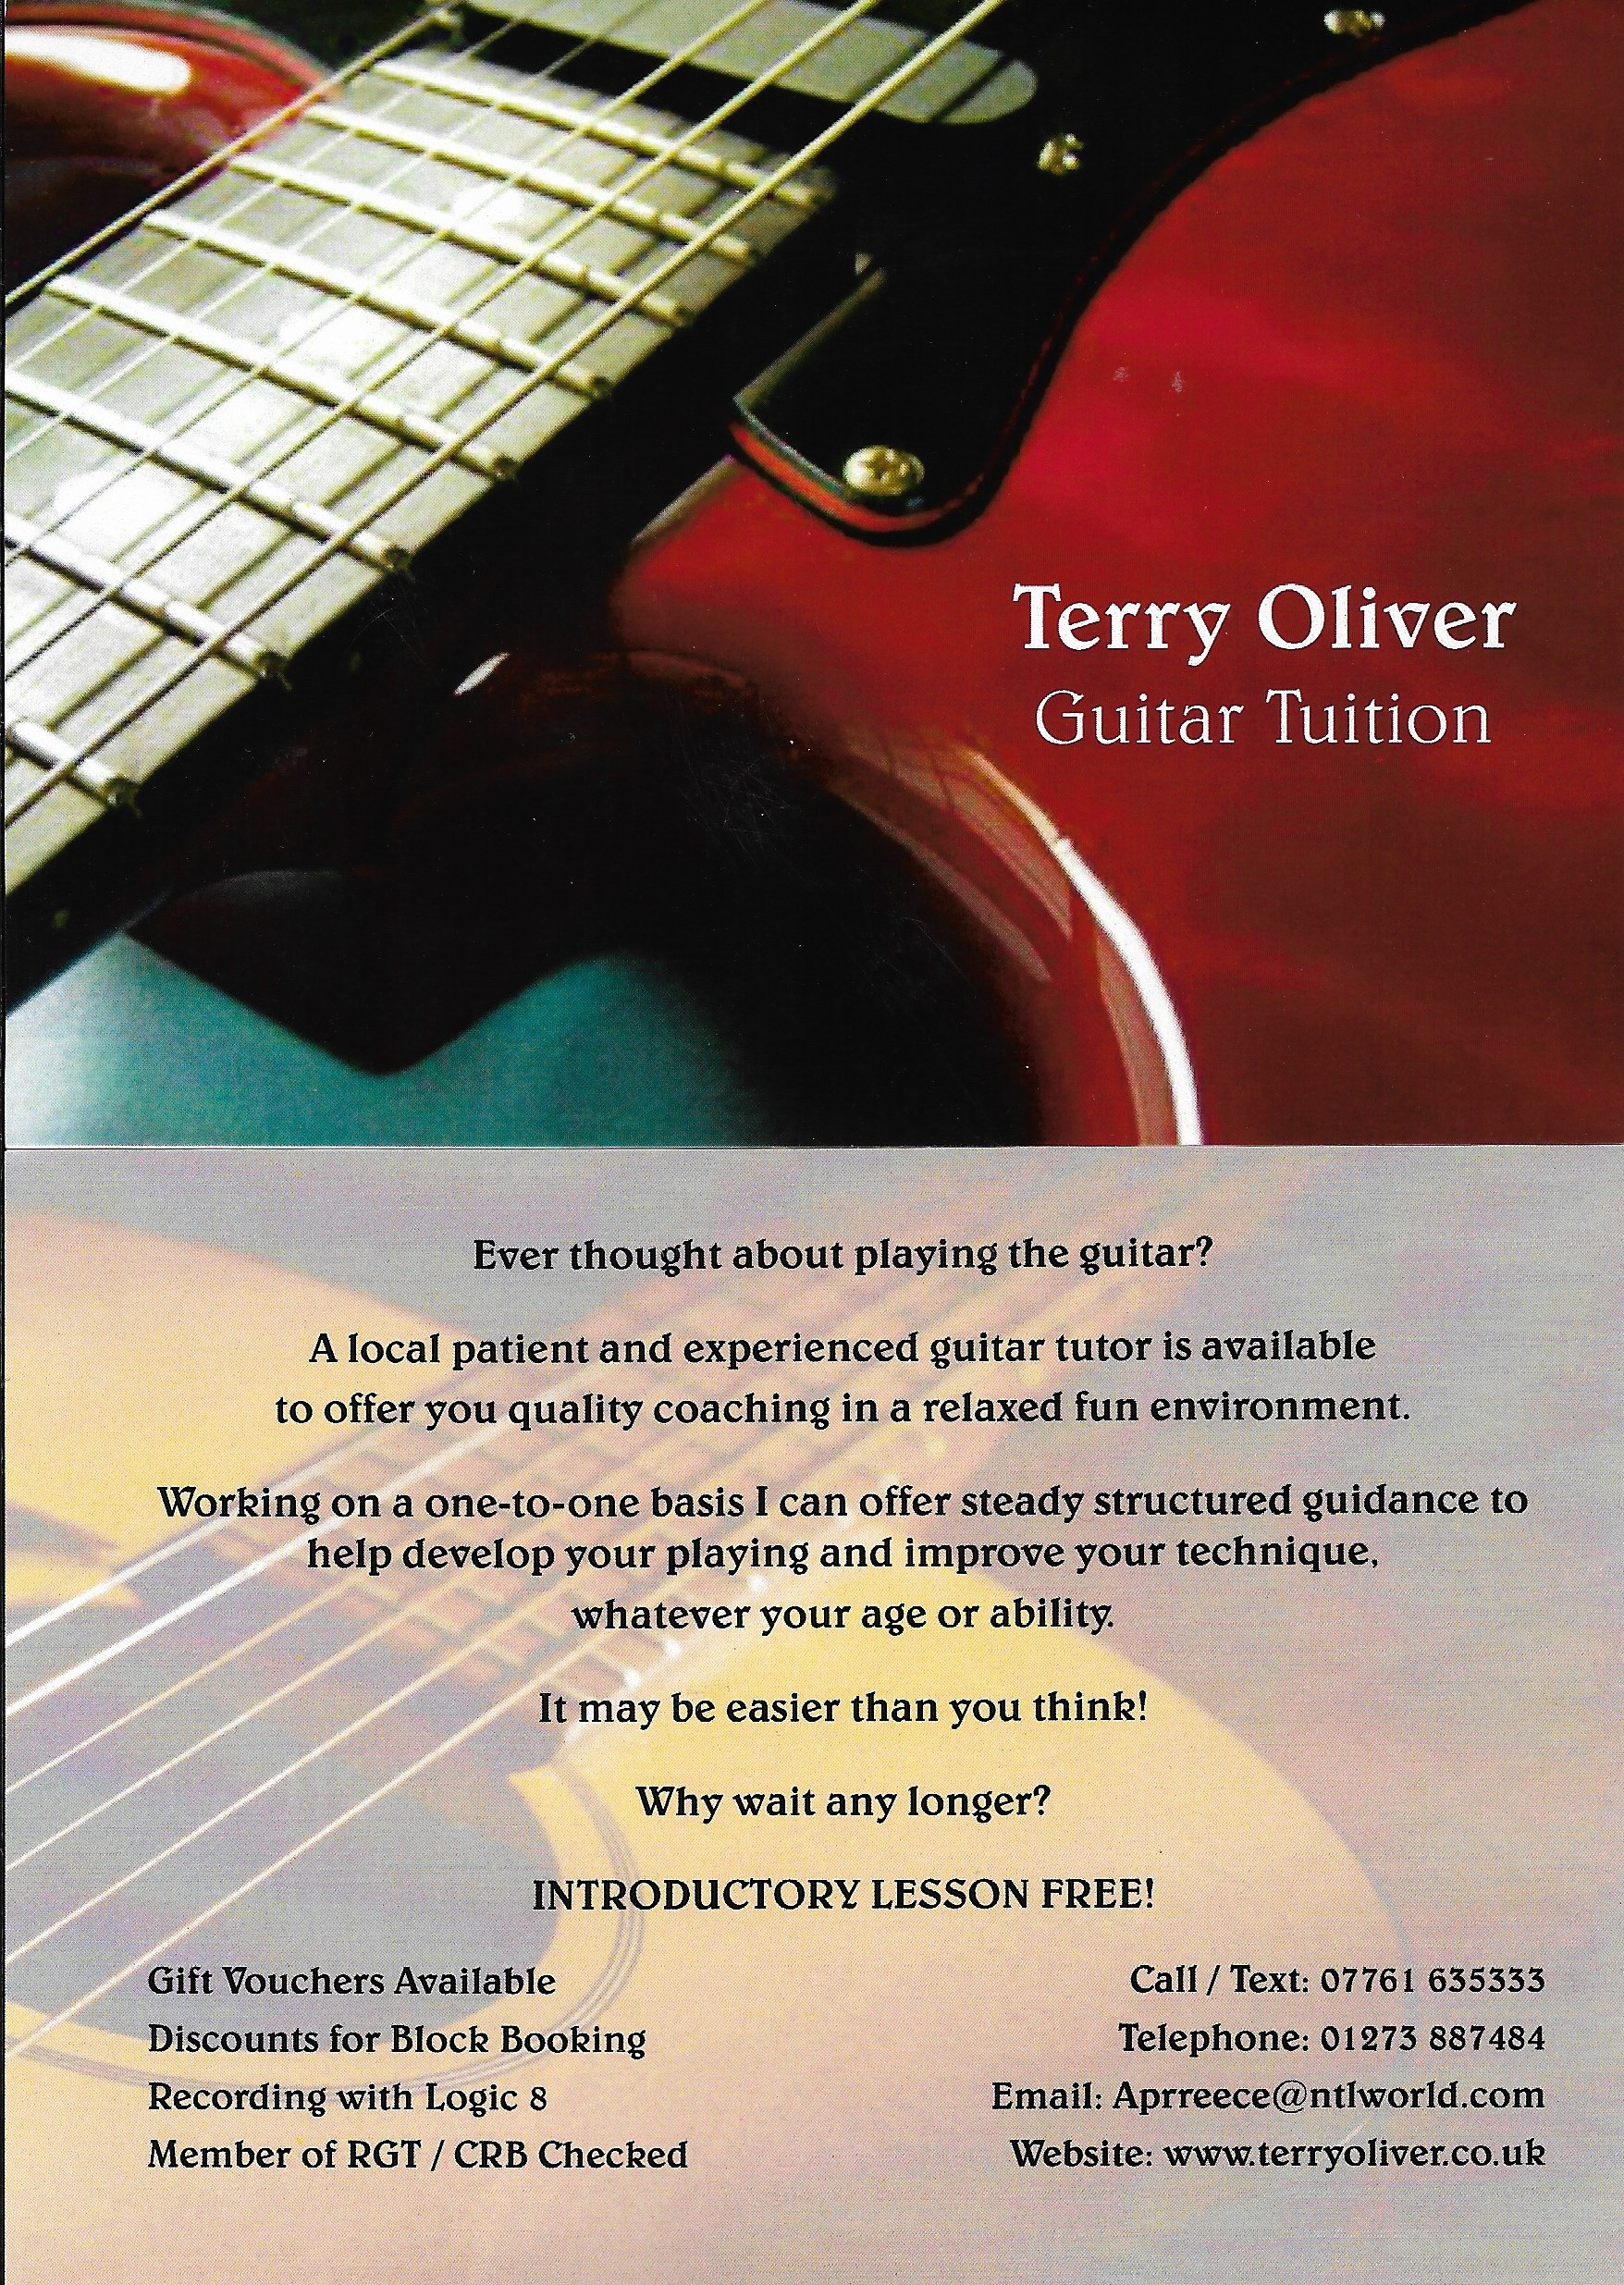 Terry Oliver Guitar Lessons